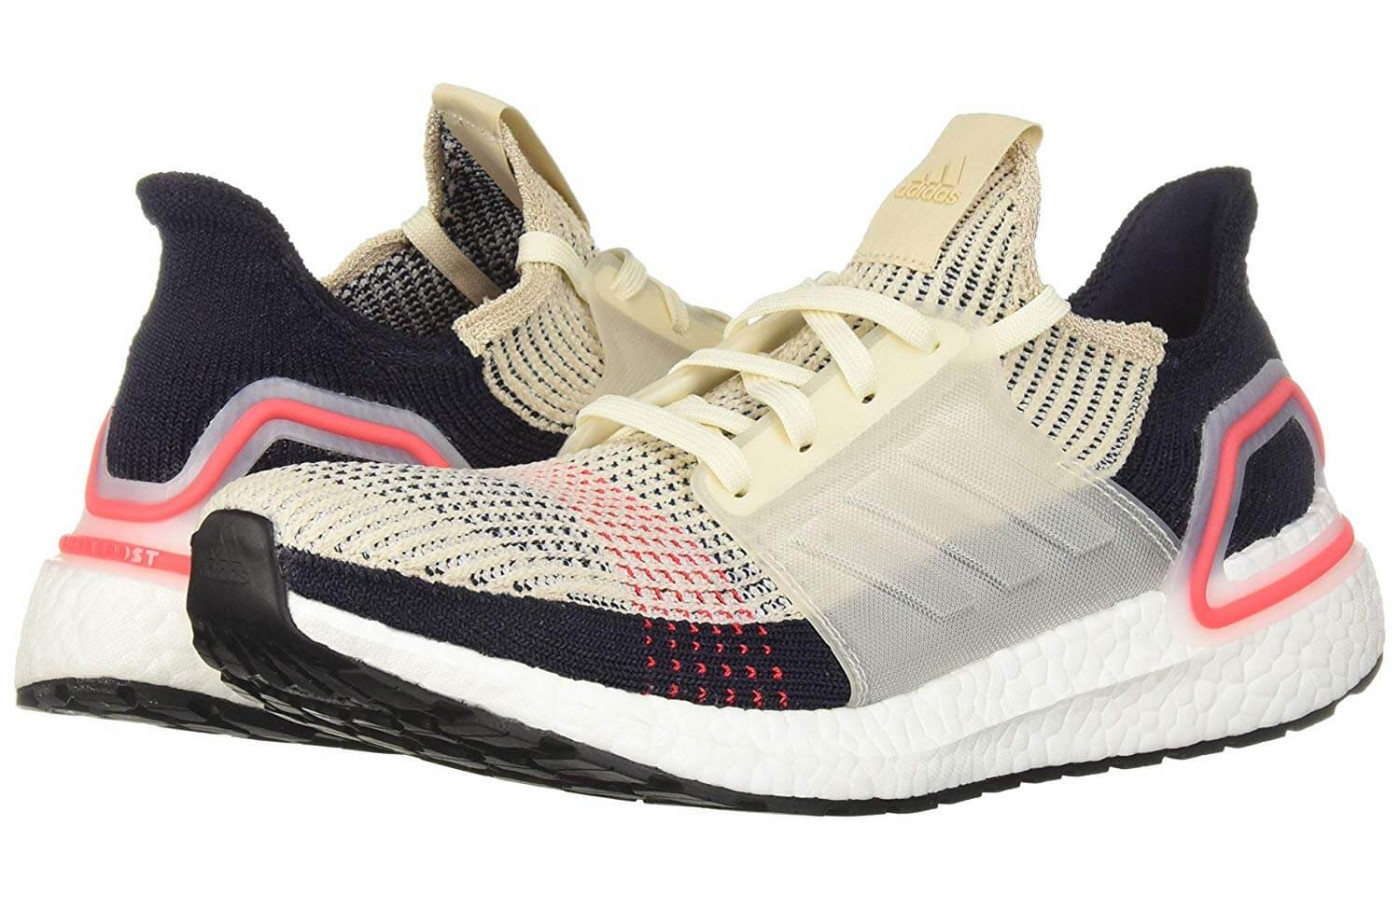 Adidas Ultraboost 19 left right